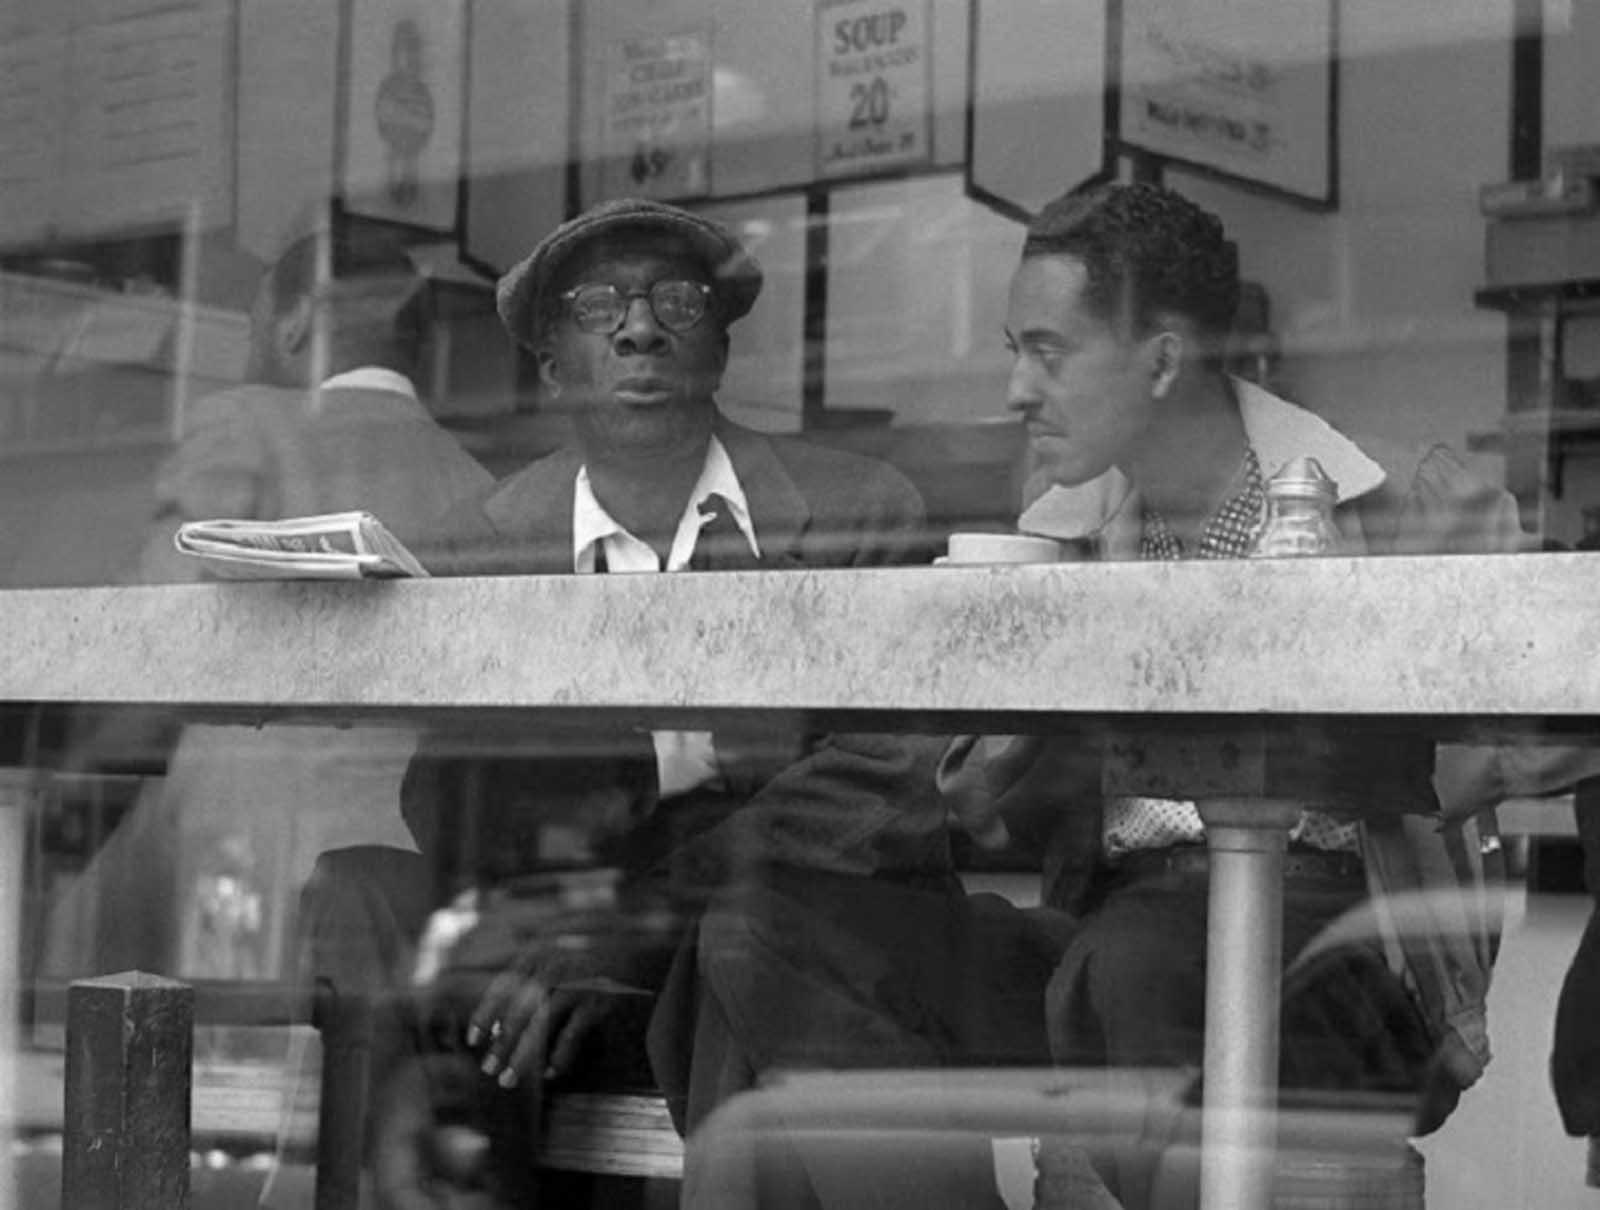 Two men have a conversation in a coffee place near Times Square in April of 1954.